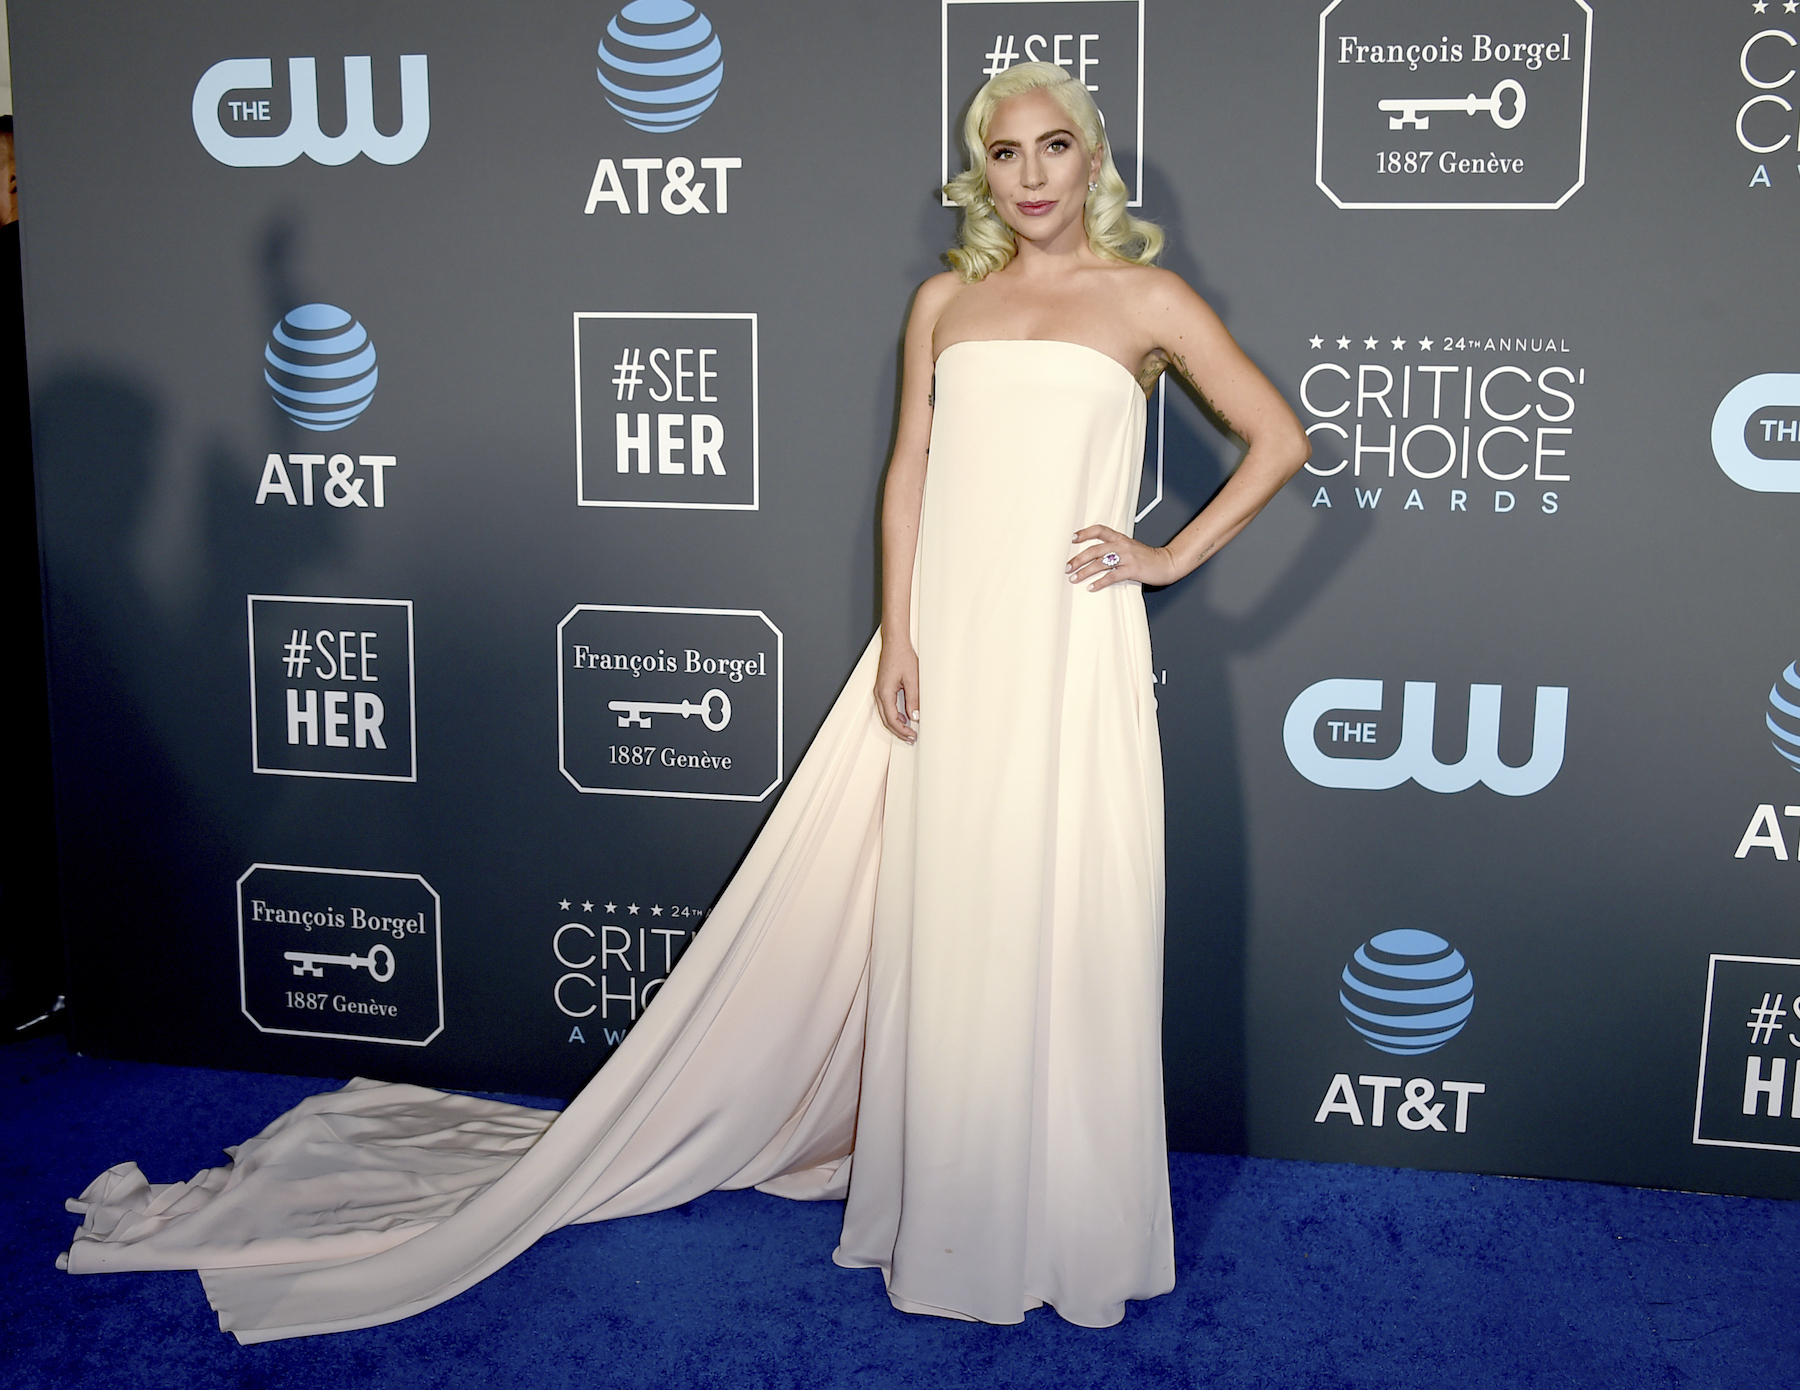 <div class='meta'><div class='origin-logo' data-origin='AP'></div><span class='caption-text' data-credit='Jordan Strauss/Invision/AP'>Lady Gaga arrives at the 24th annual Critics' Choice Awards on Sunday, Jan. 13, 2019, at the Barker Hangar in Santa Monica, Calif.</span></div>